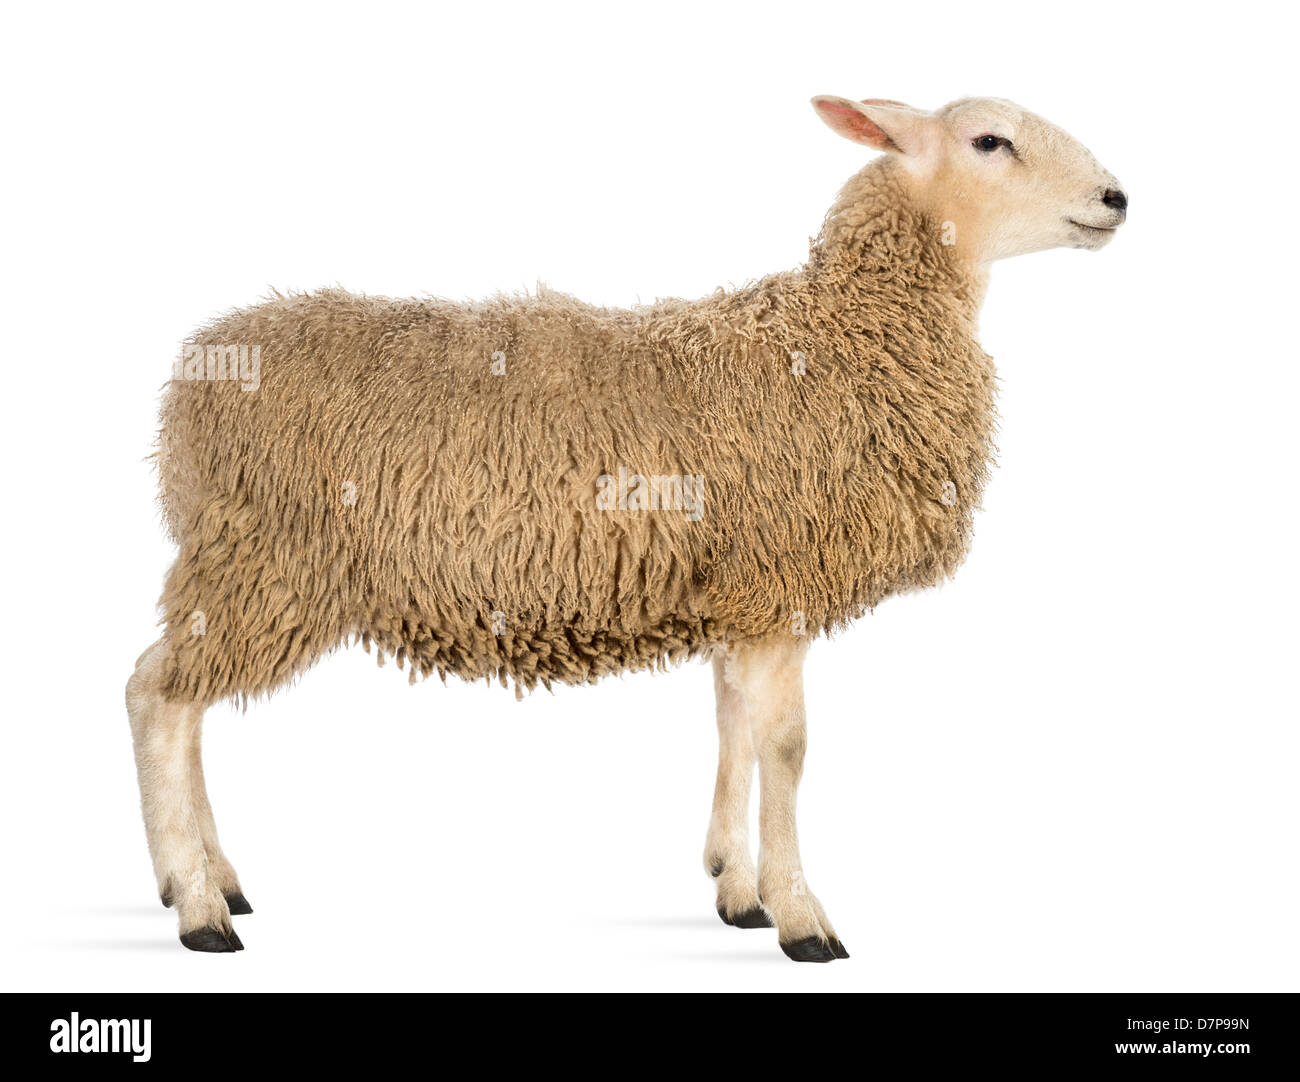 Side view of Sheep standing in front of white background ...